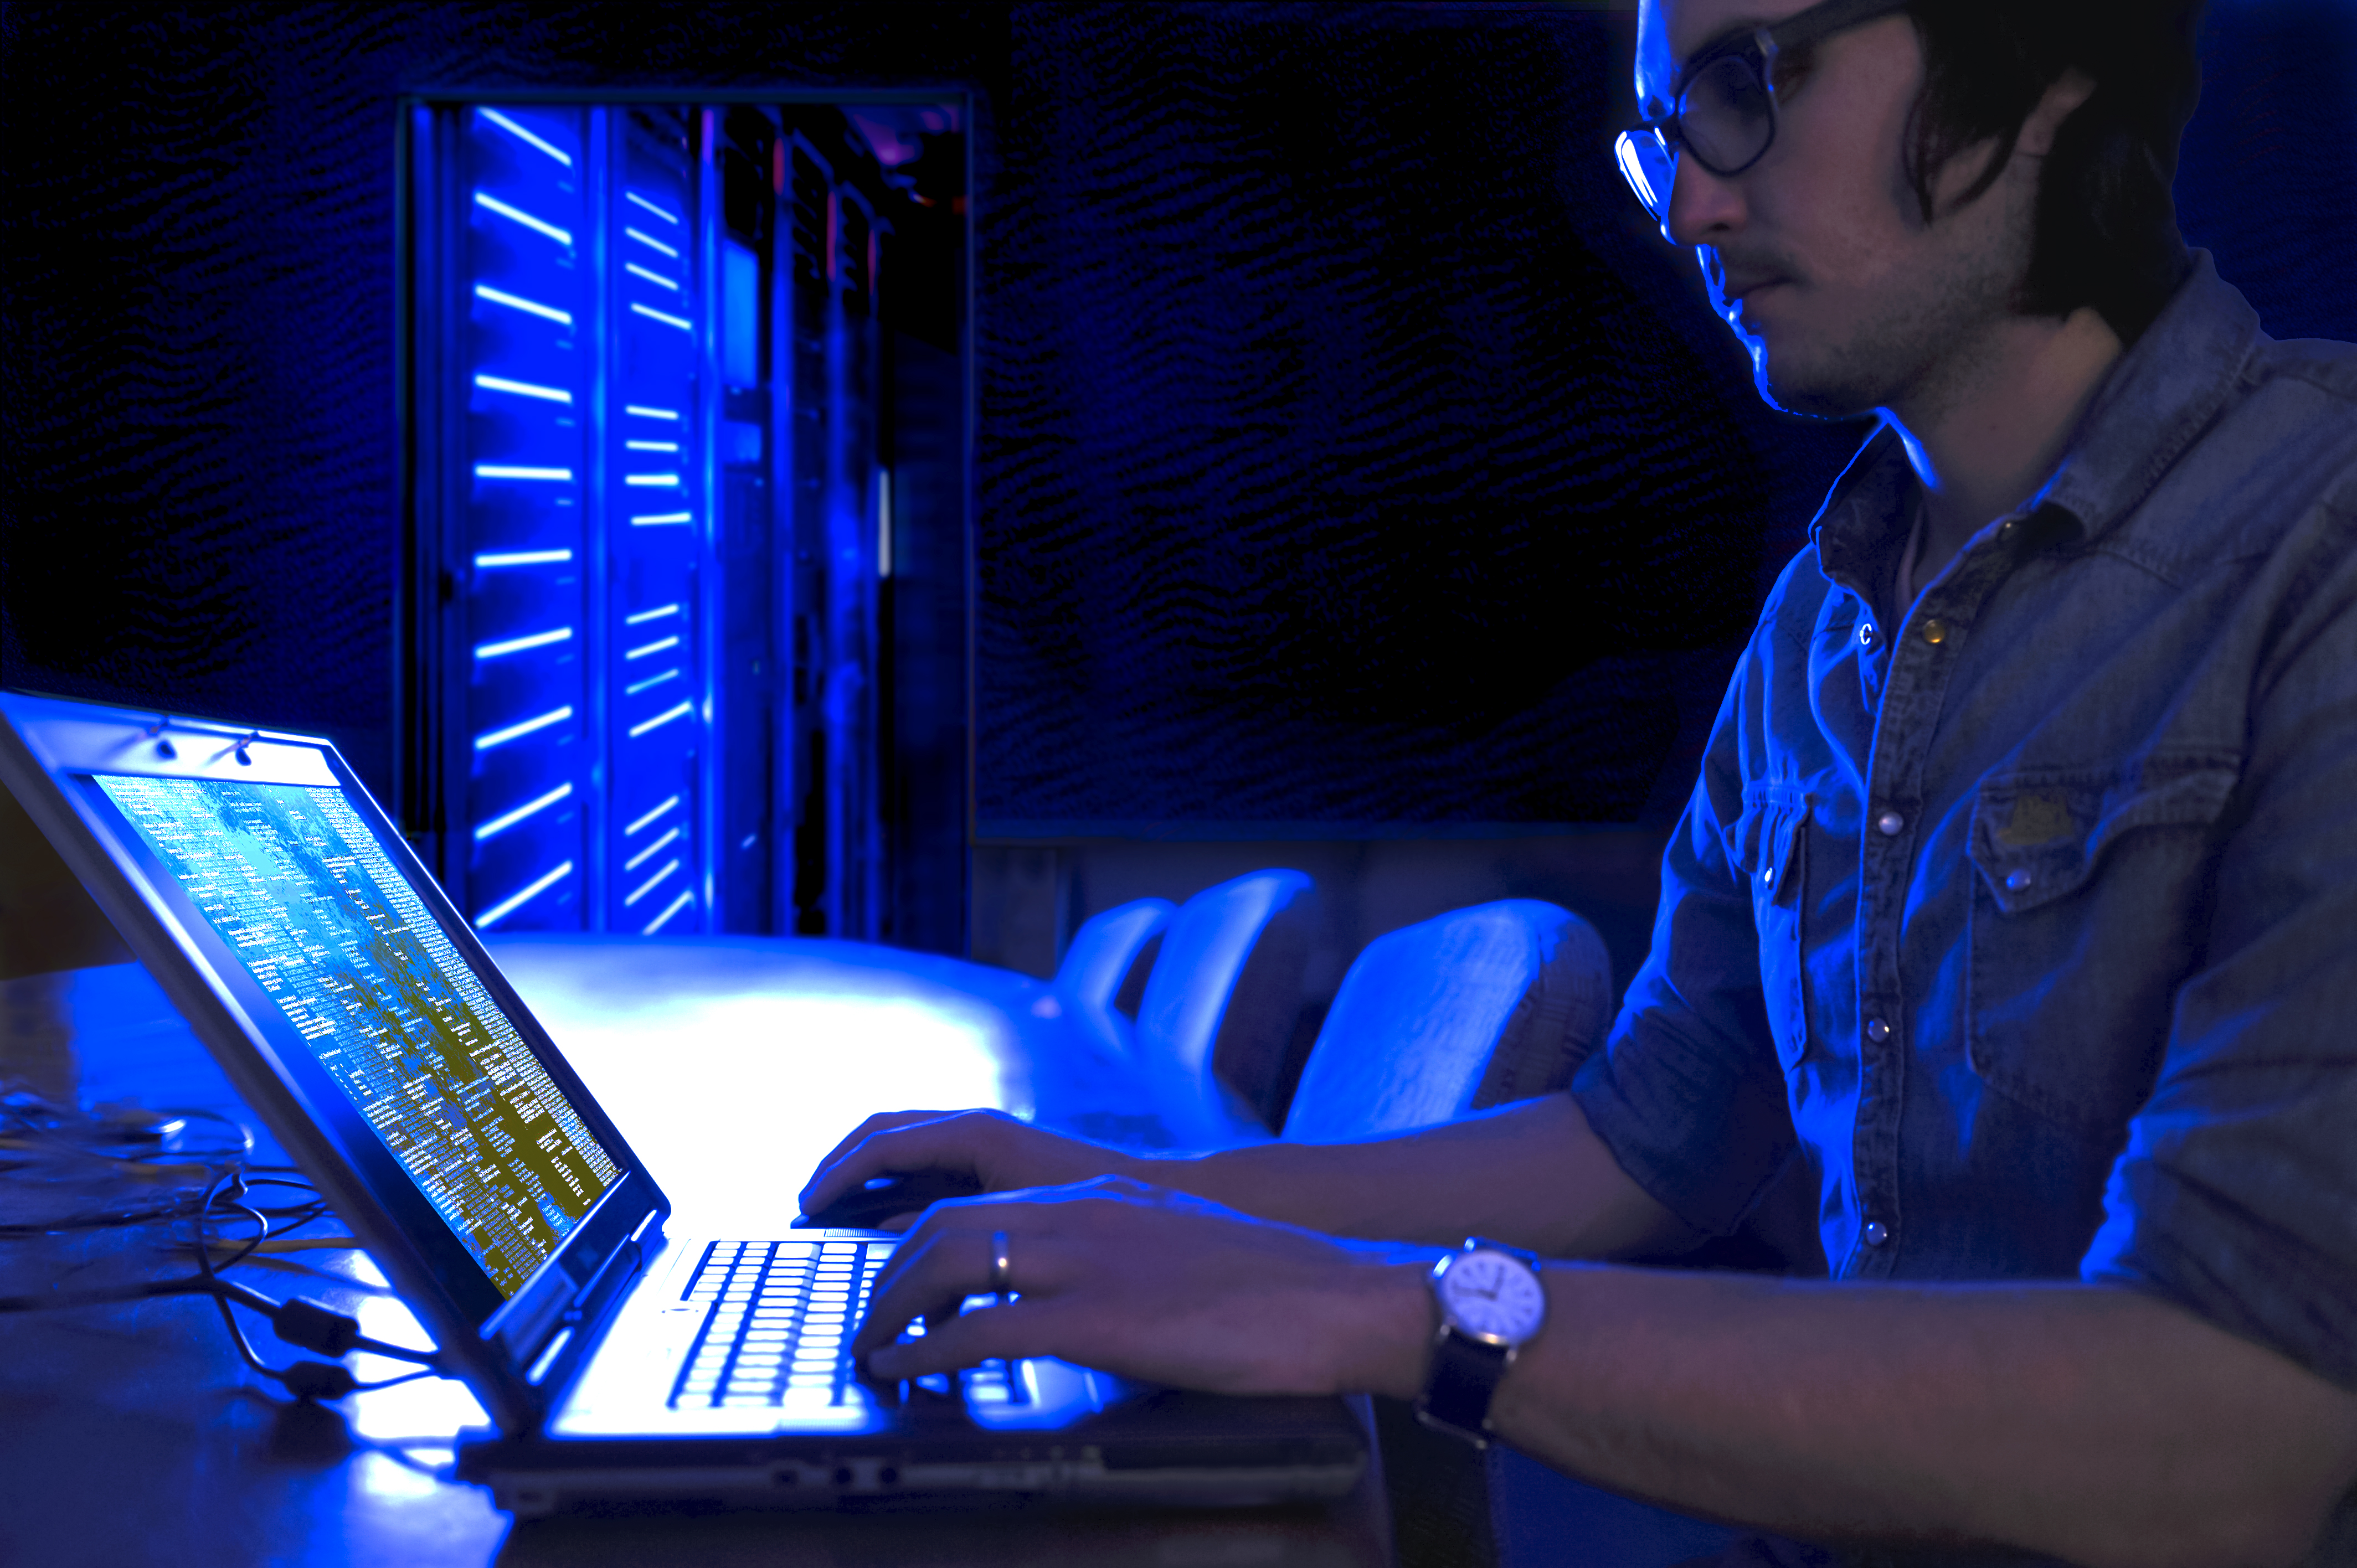 Man coding on laptop surrounded in a glow of blue light.